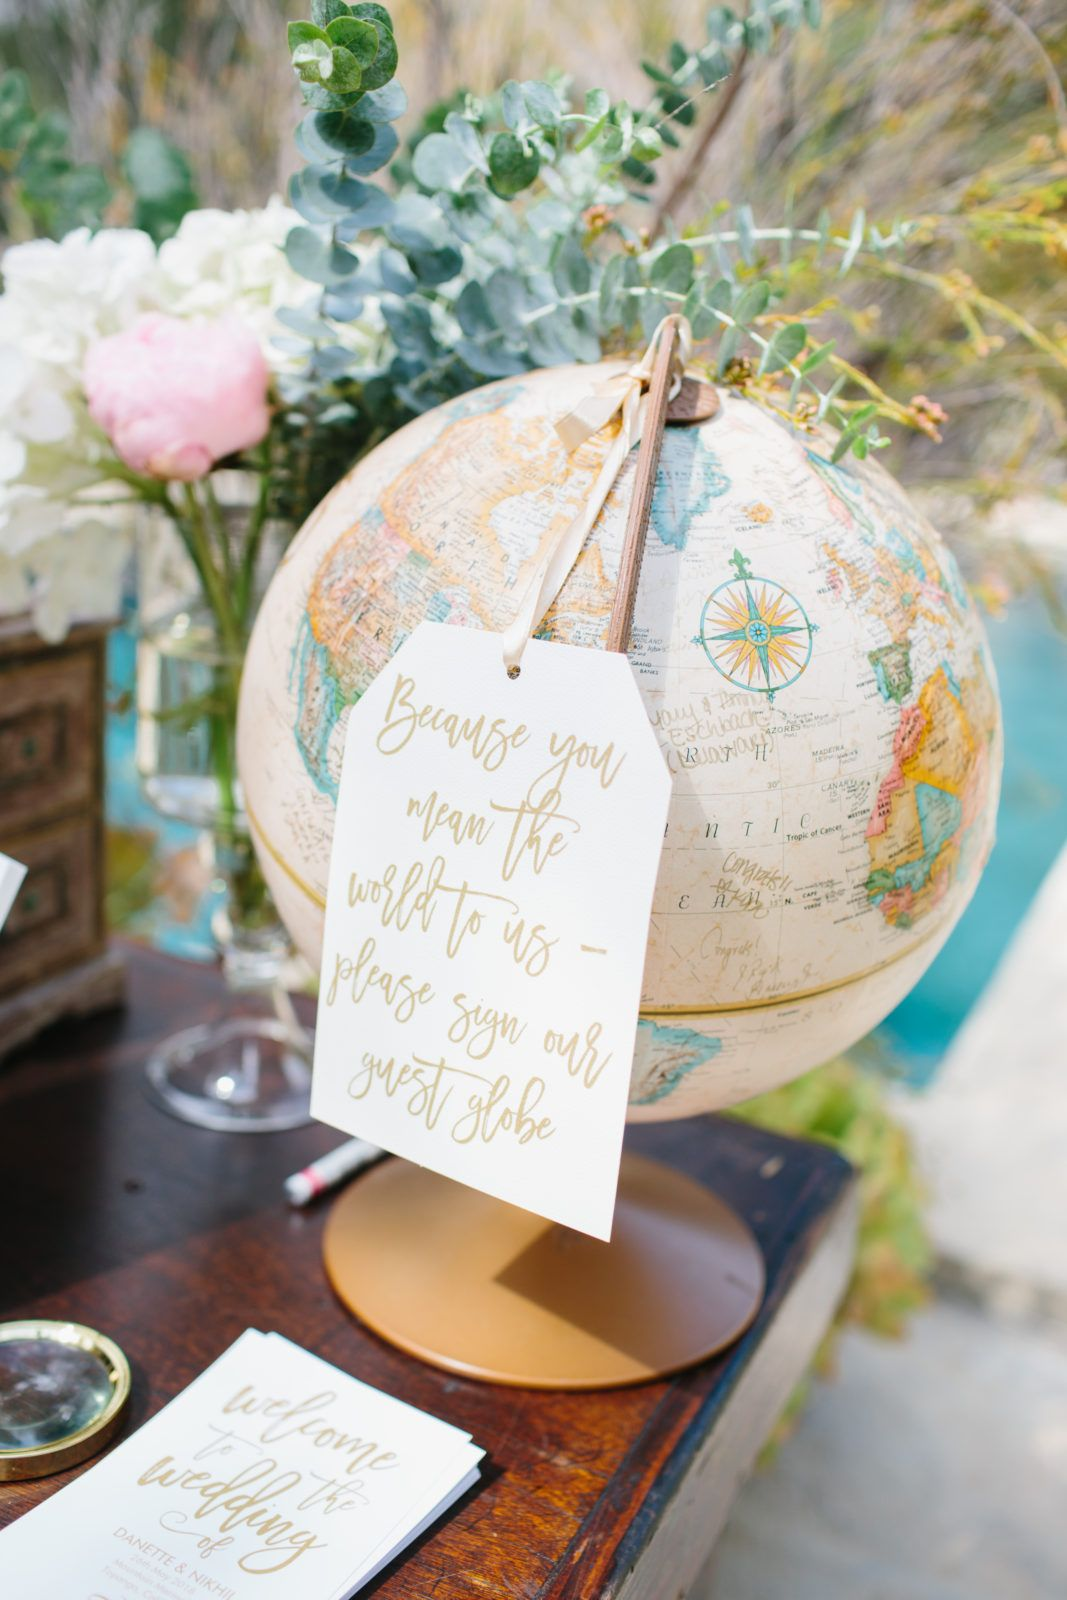 A Travel Themed Wedding At The Mountain Mermaid Feathered Arrow Wedding Planning Travel Theme Wedding Wedding Guest Book Wedding Table Themes